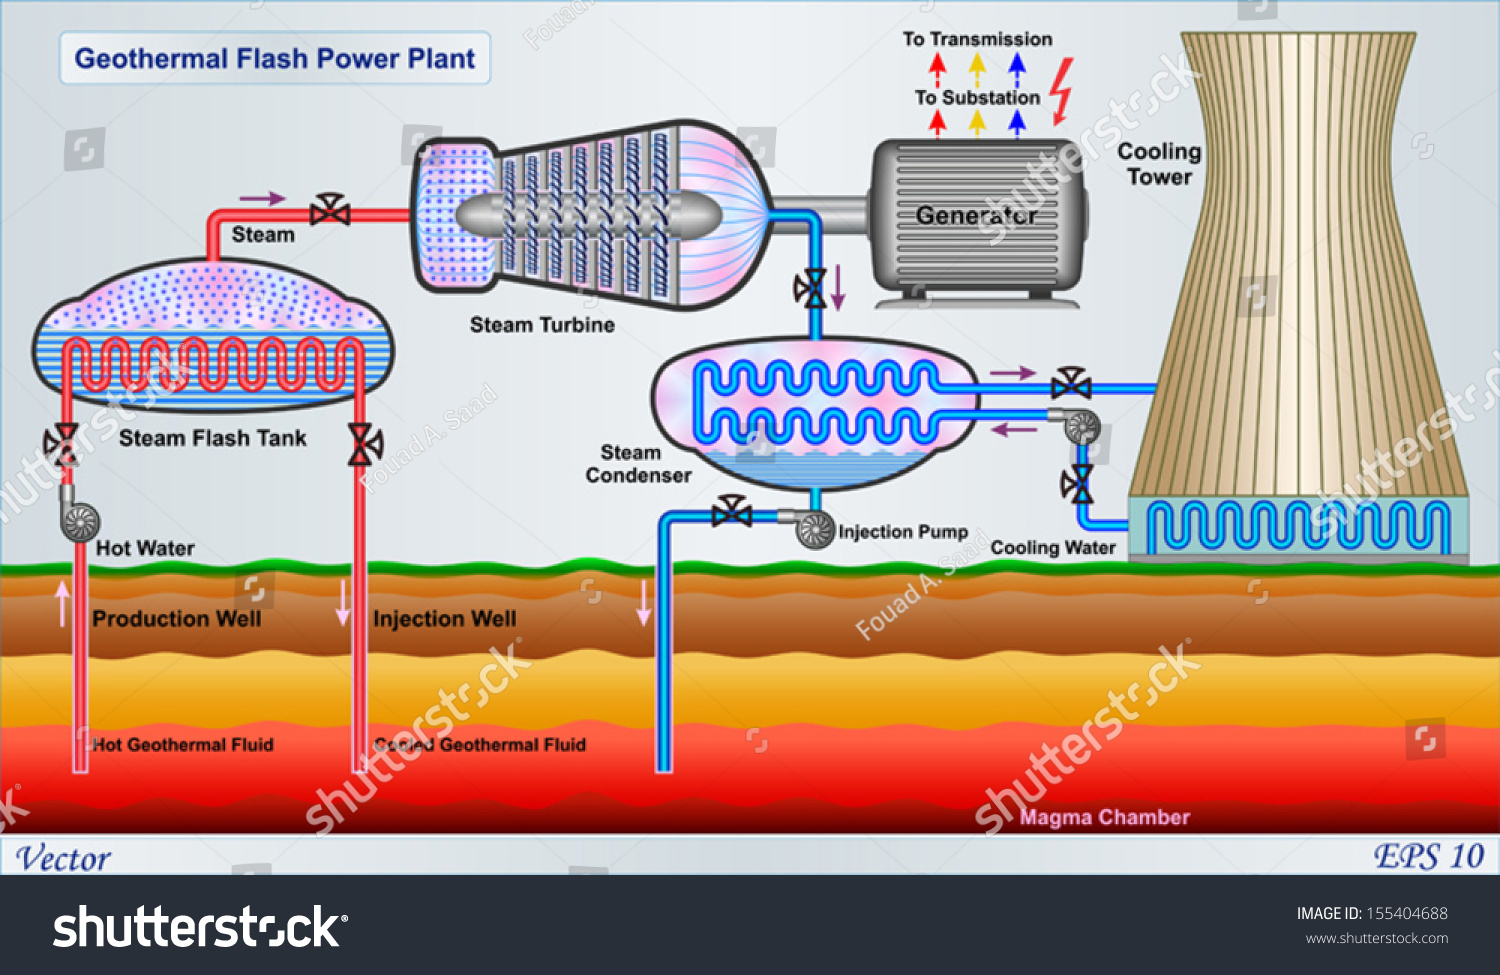 geothermal flash power plant diagram stock vector